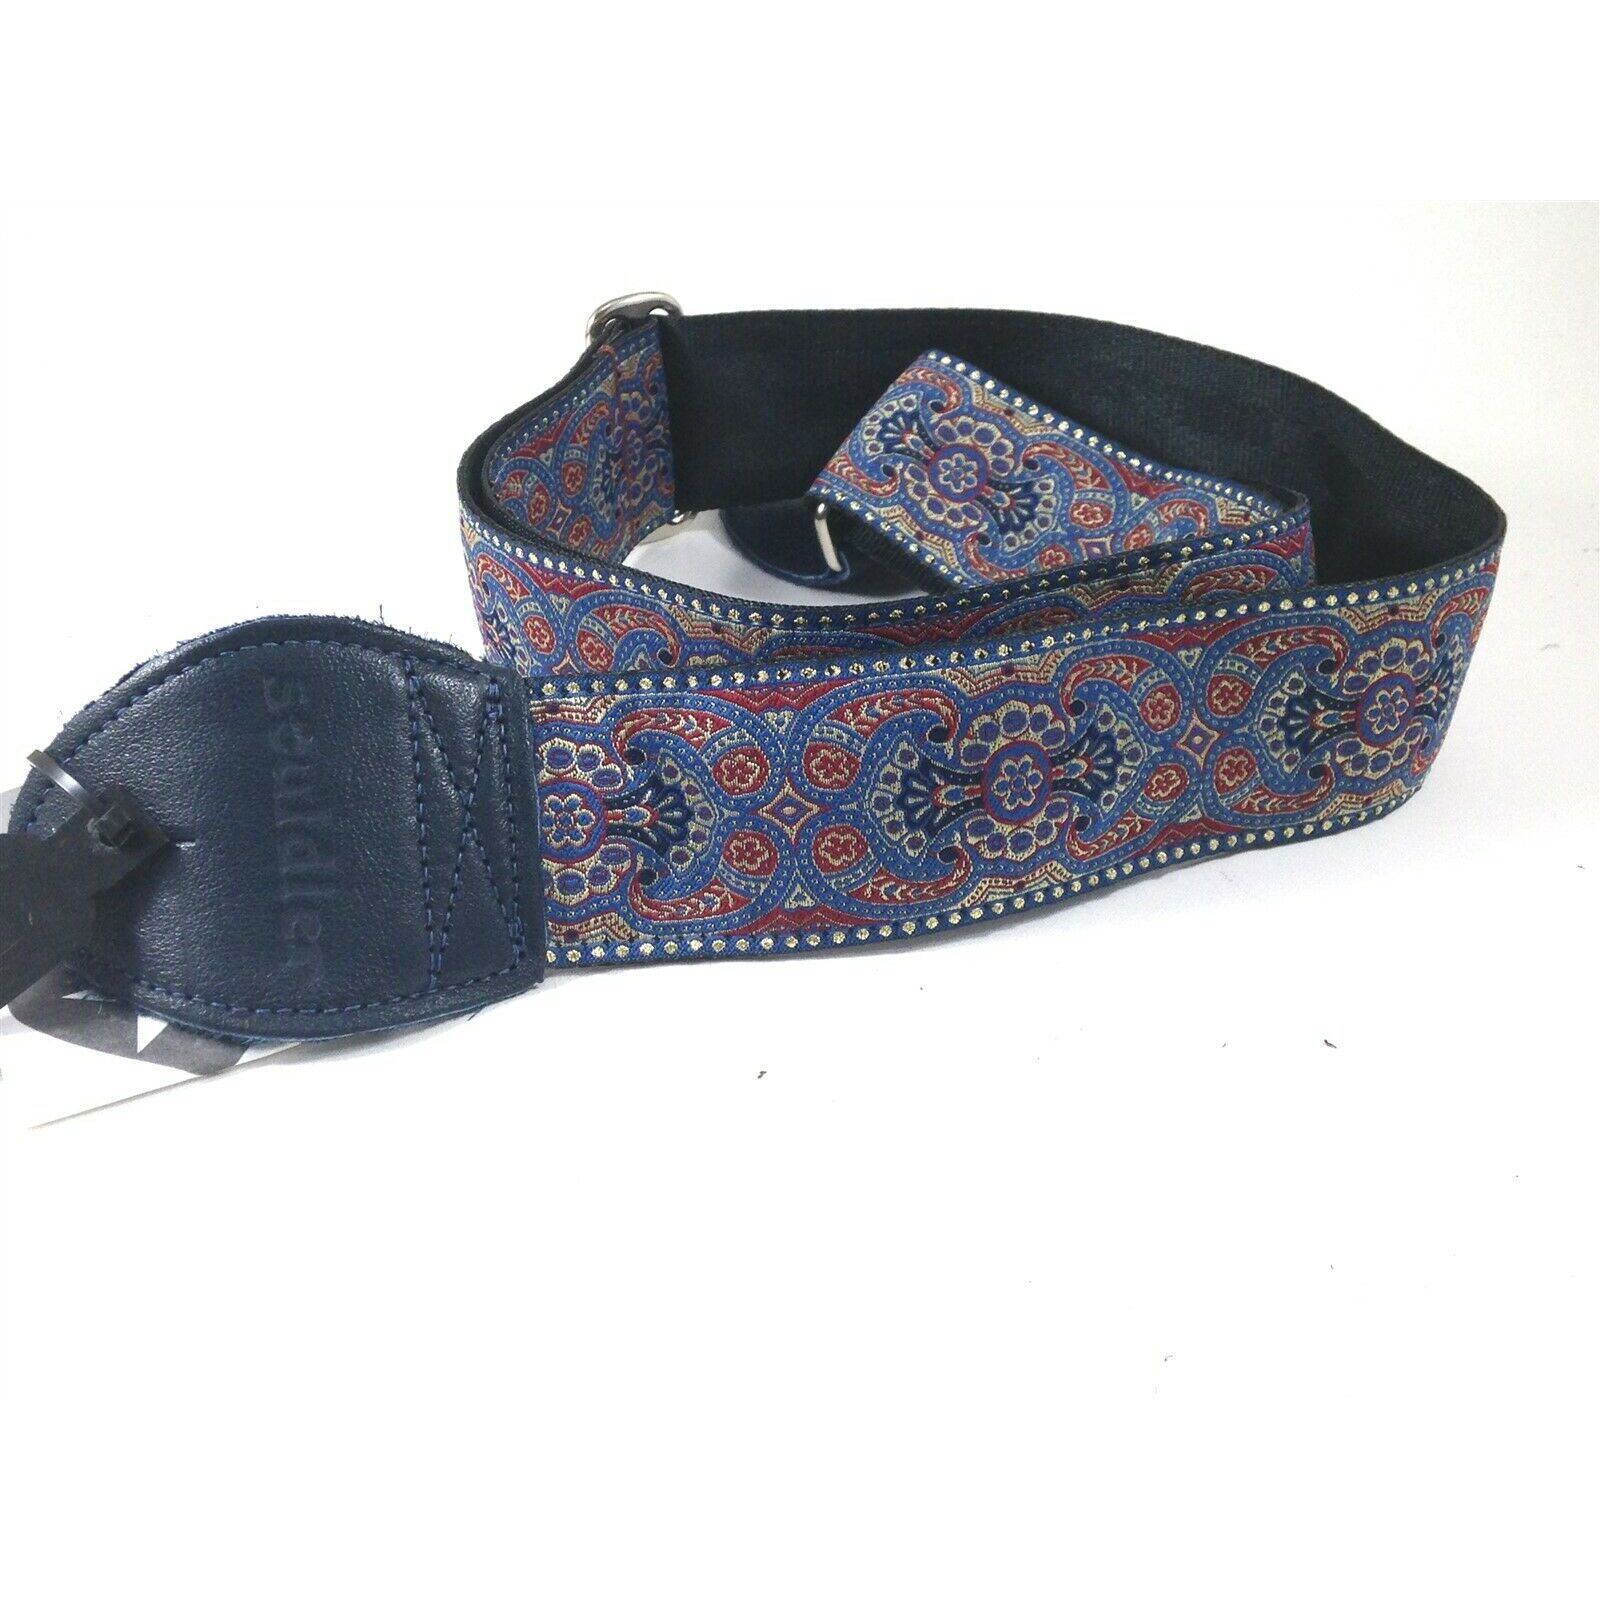 SOULDIER GUITAR STRAPS ARABESQUE INDIGO